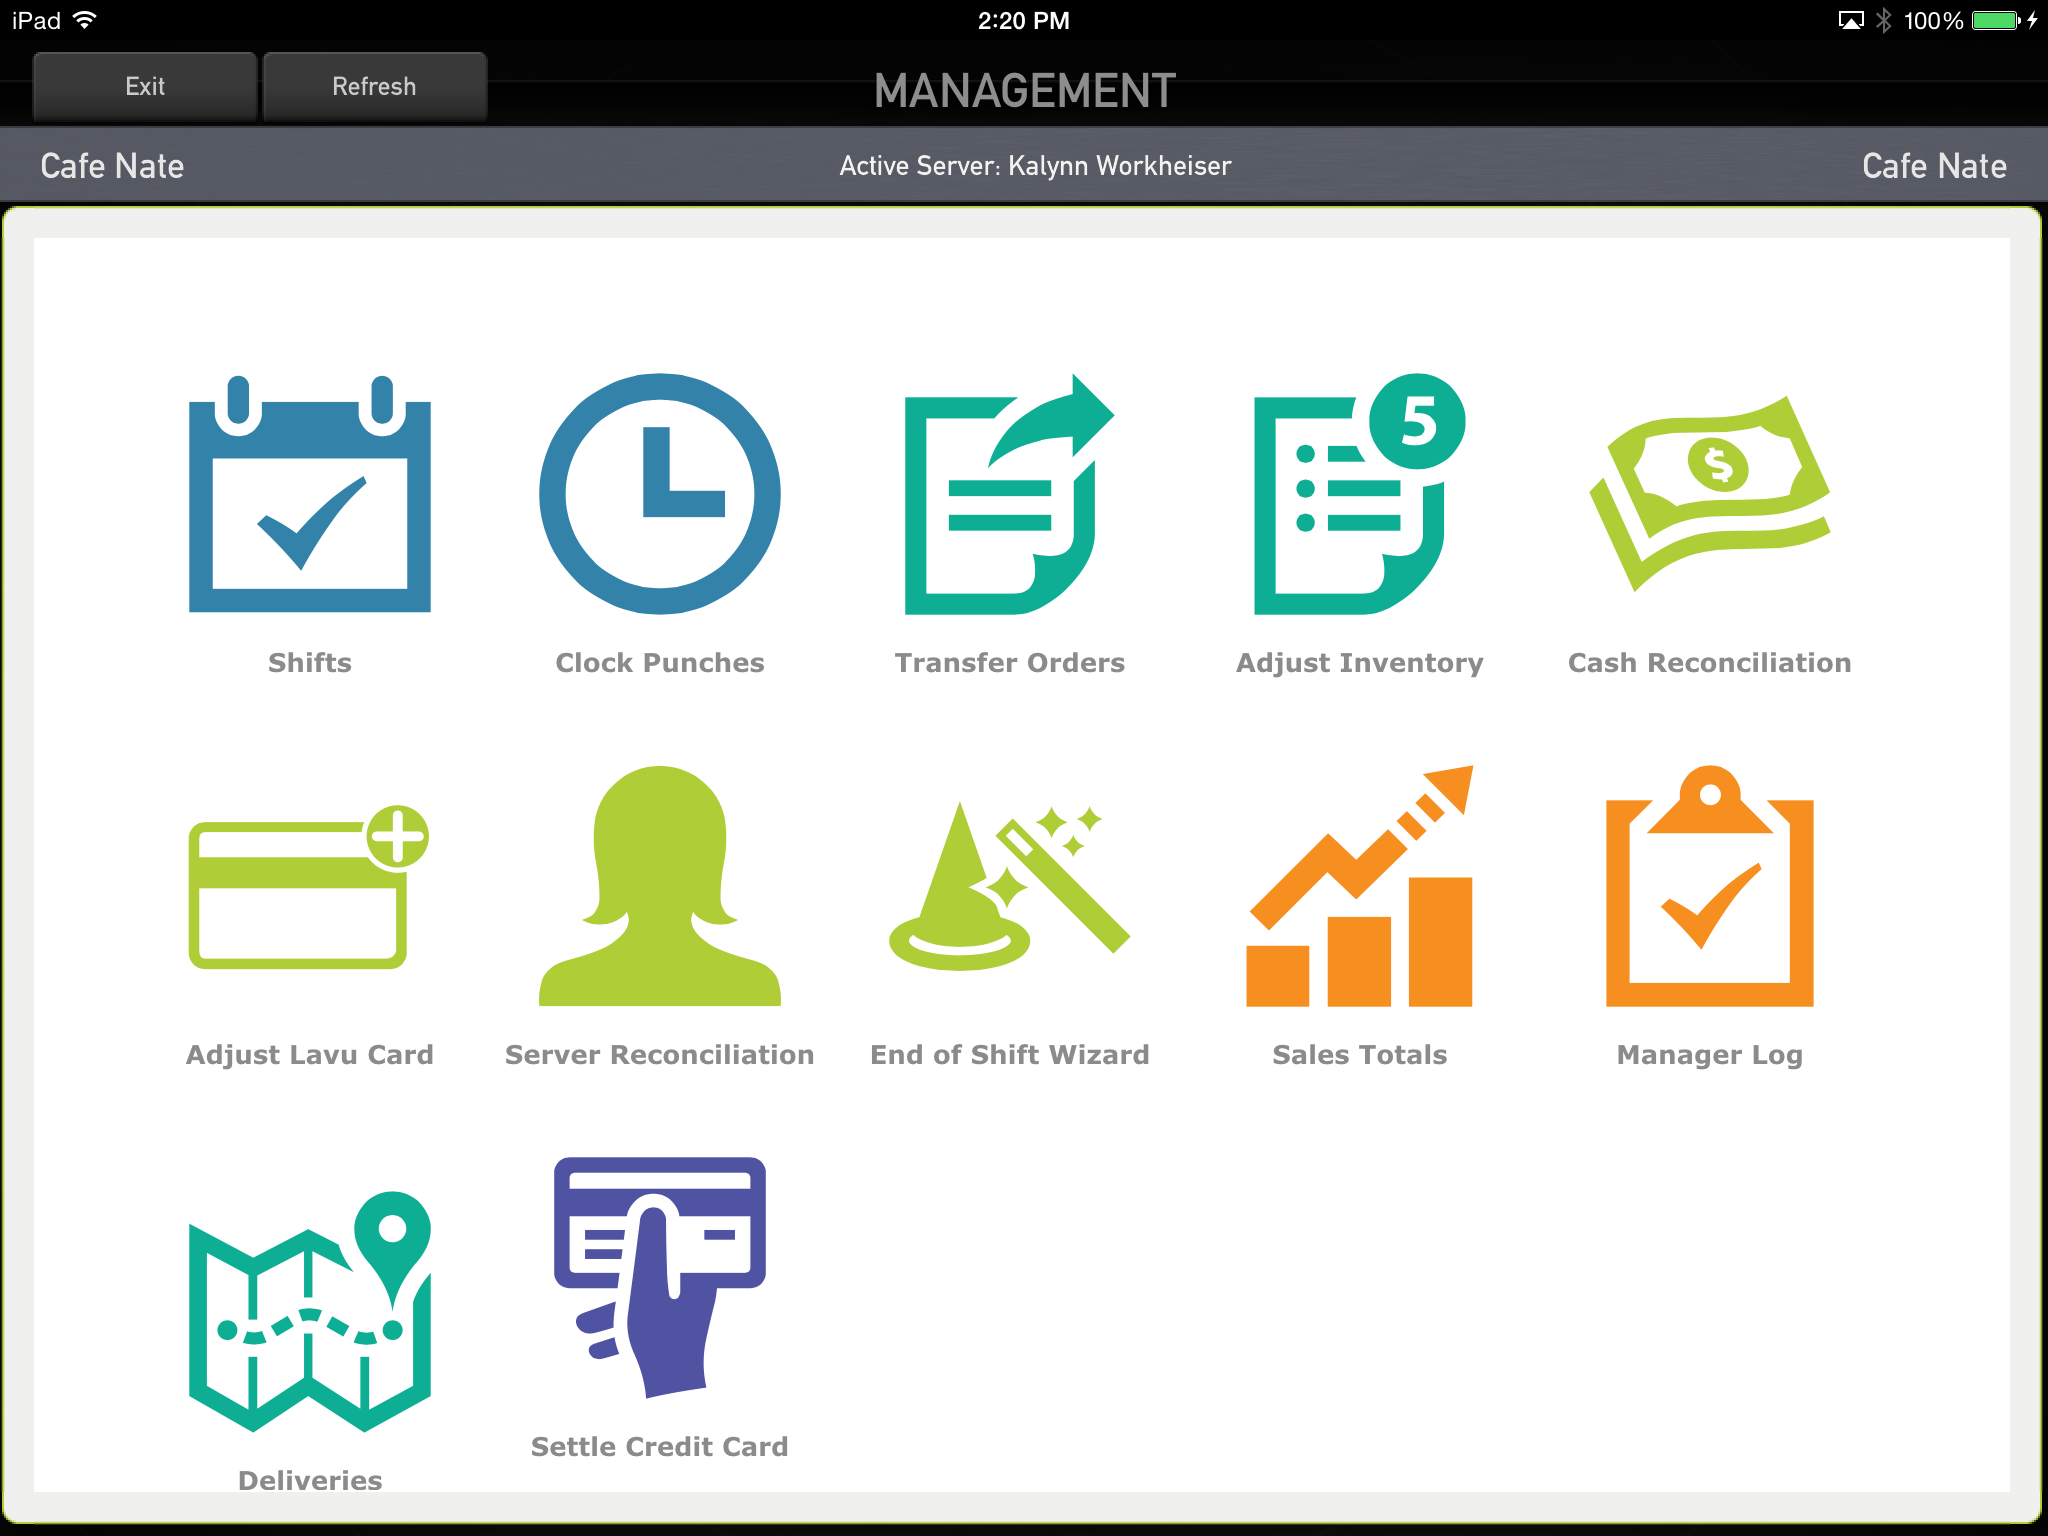 Management controls employee access to functions.